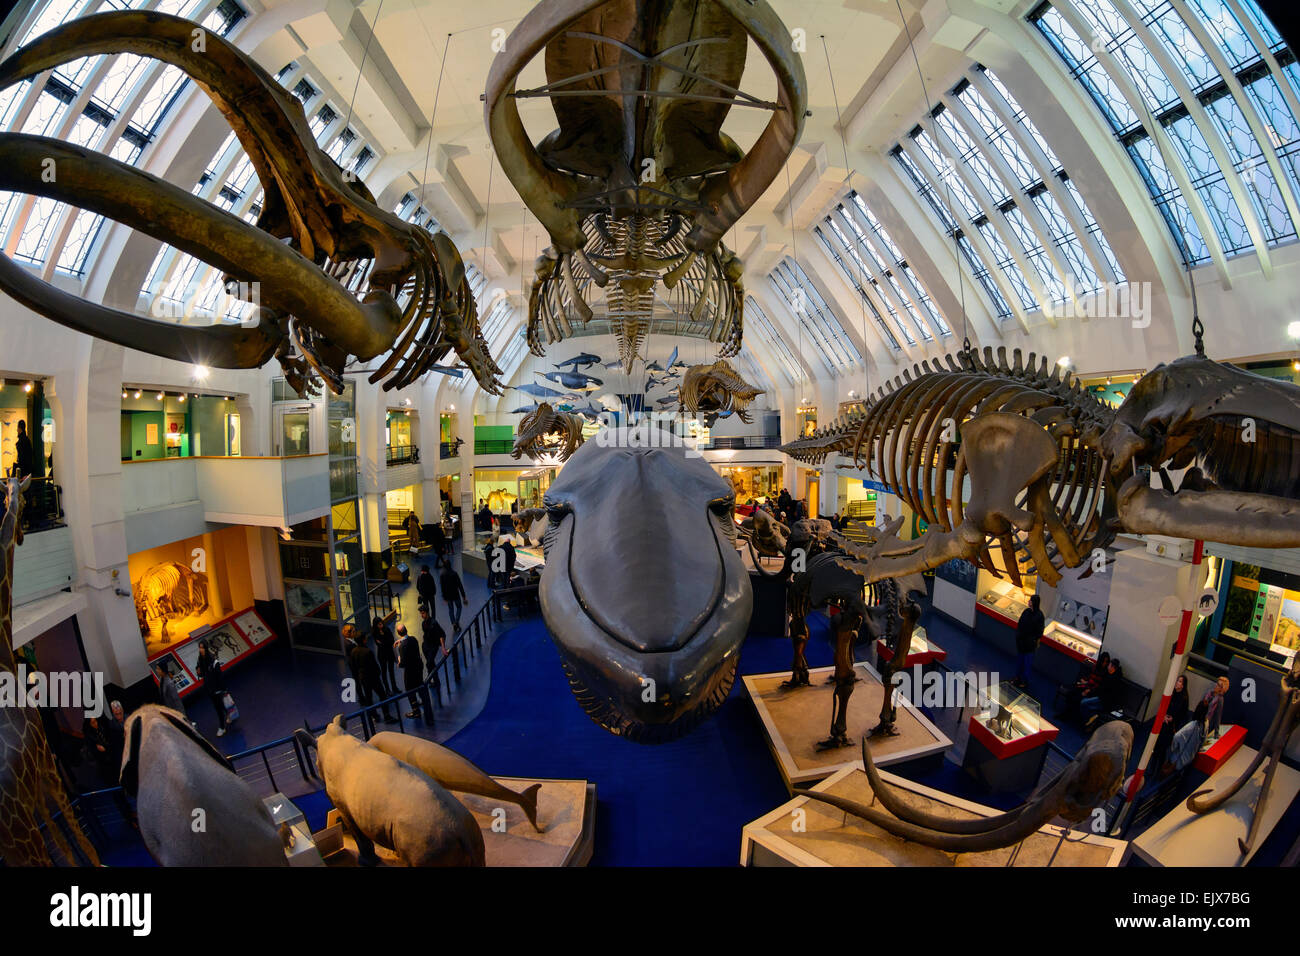 The interior of the Natural History Museum, London, United Kingdom. - Stock Image